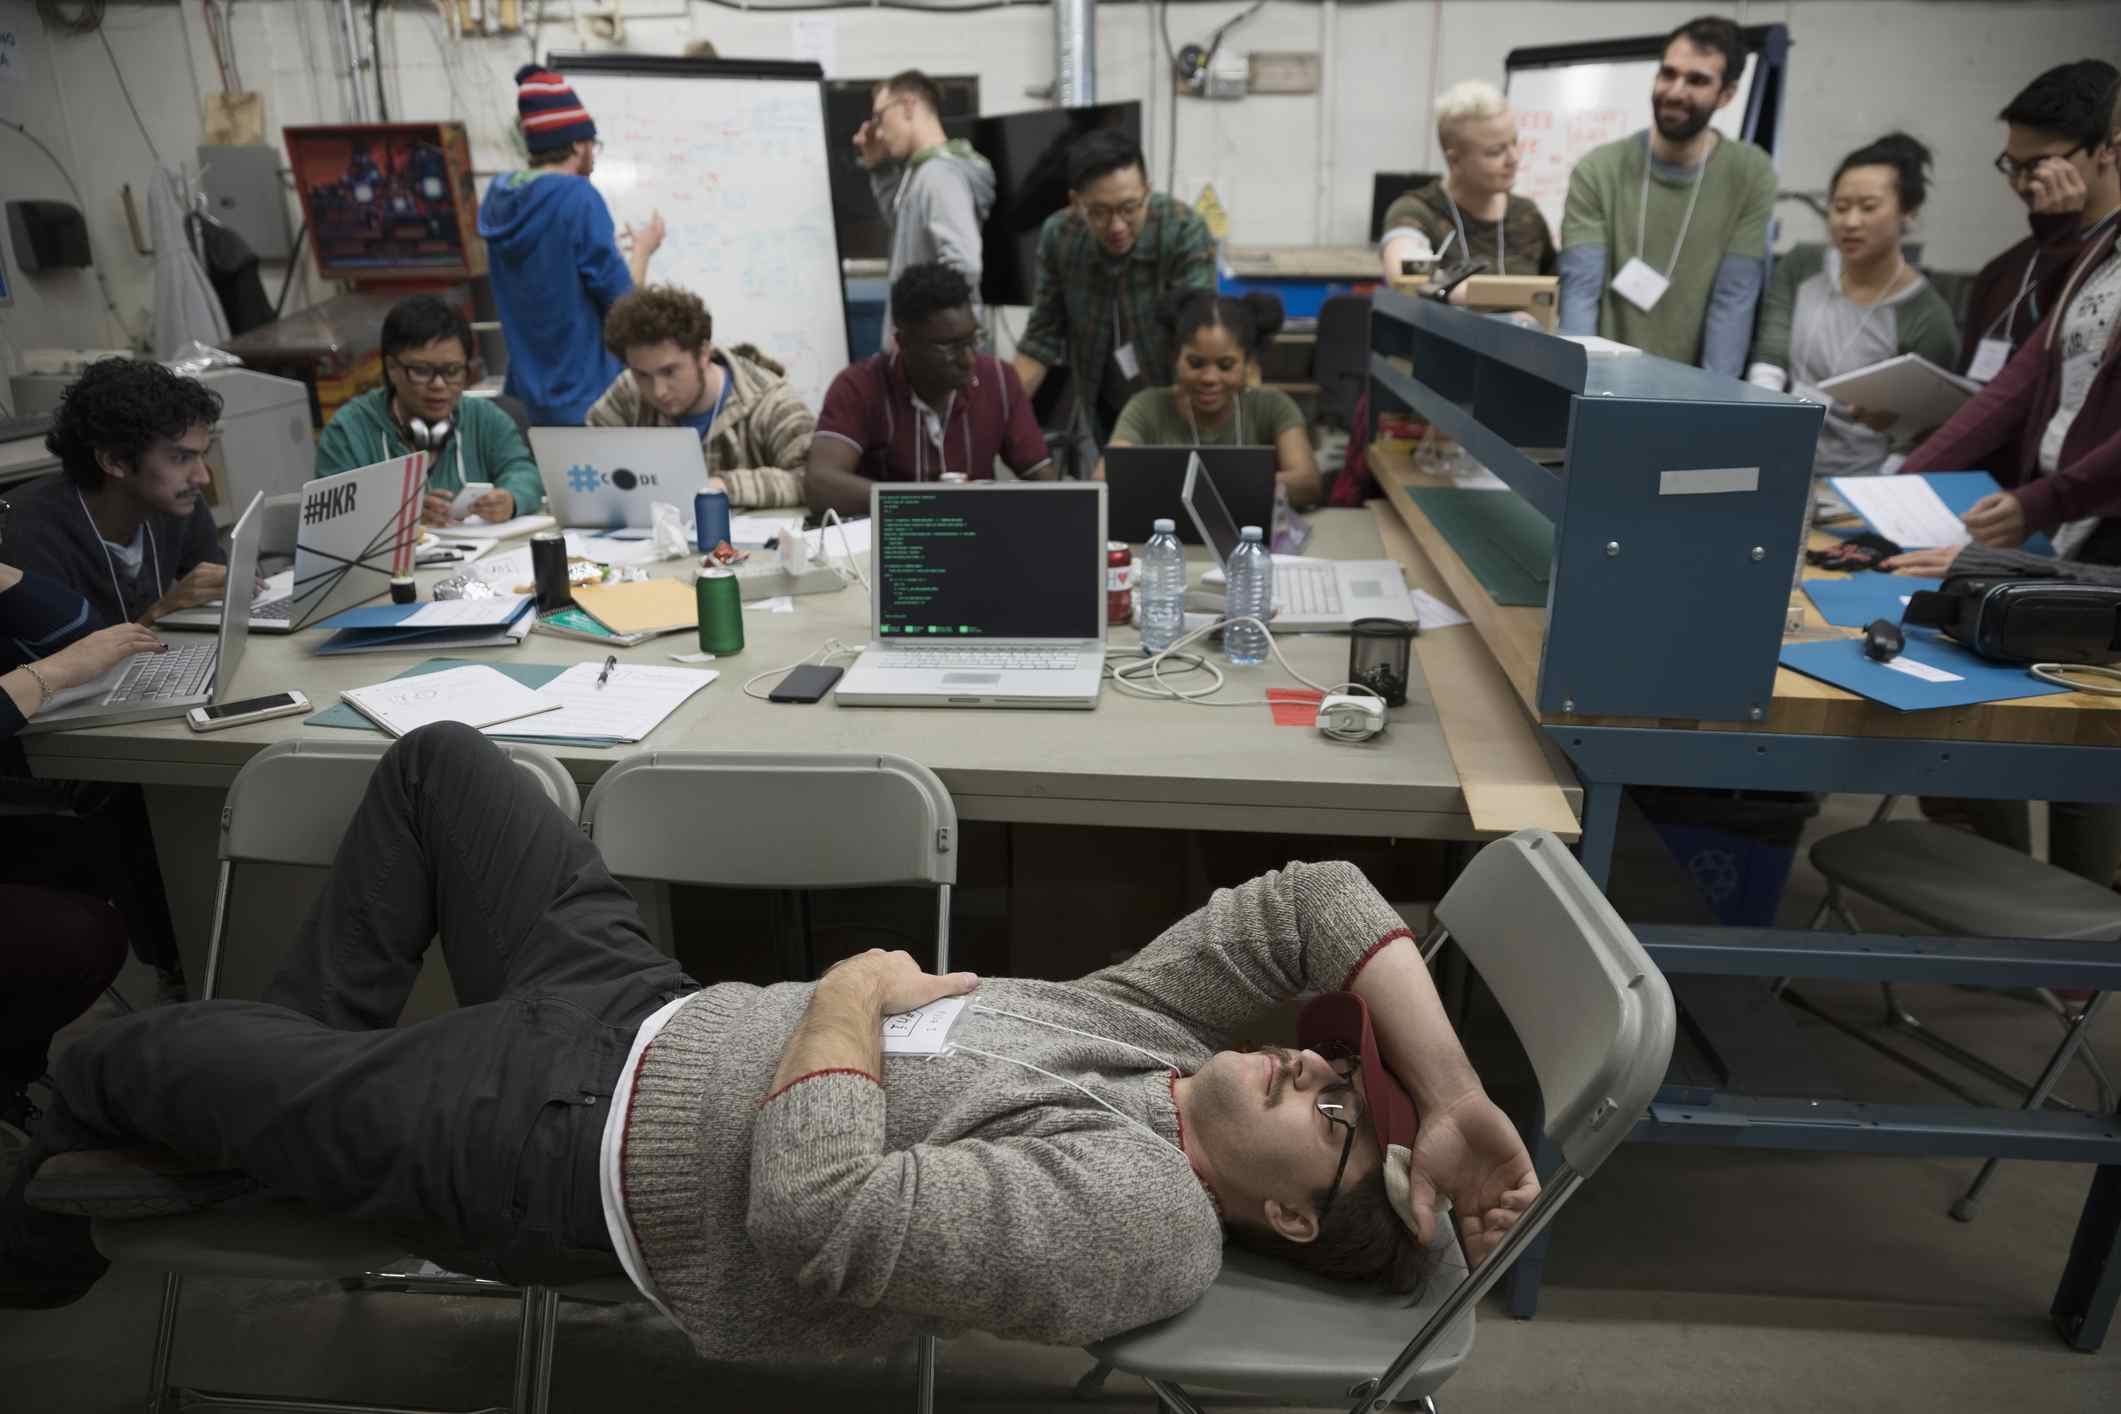 A community of hackers at a hackathon.